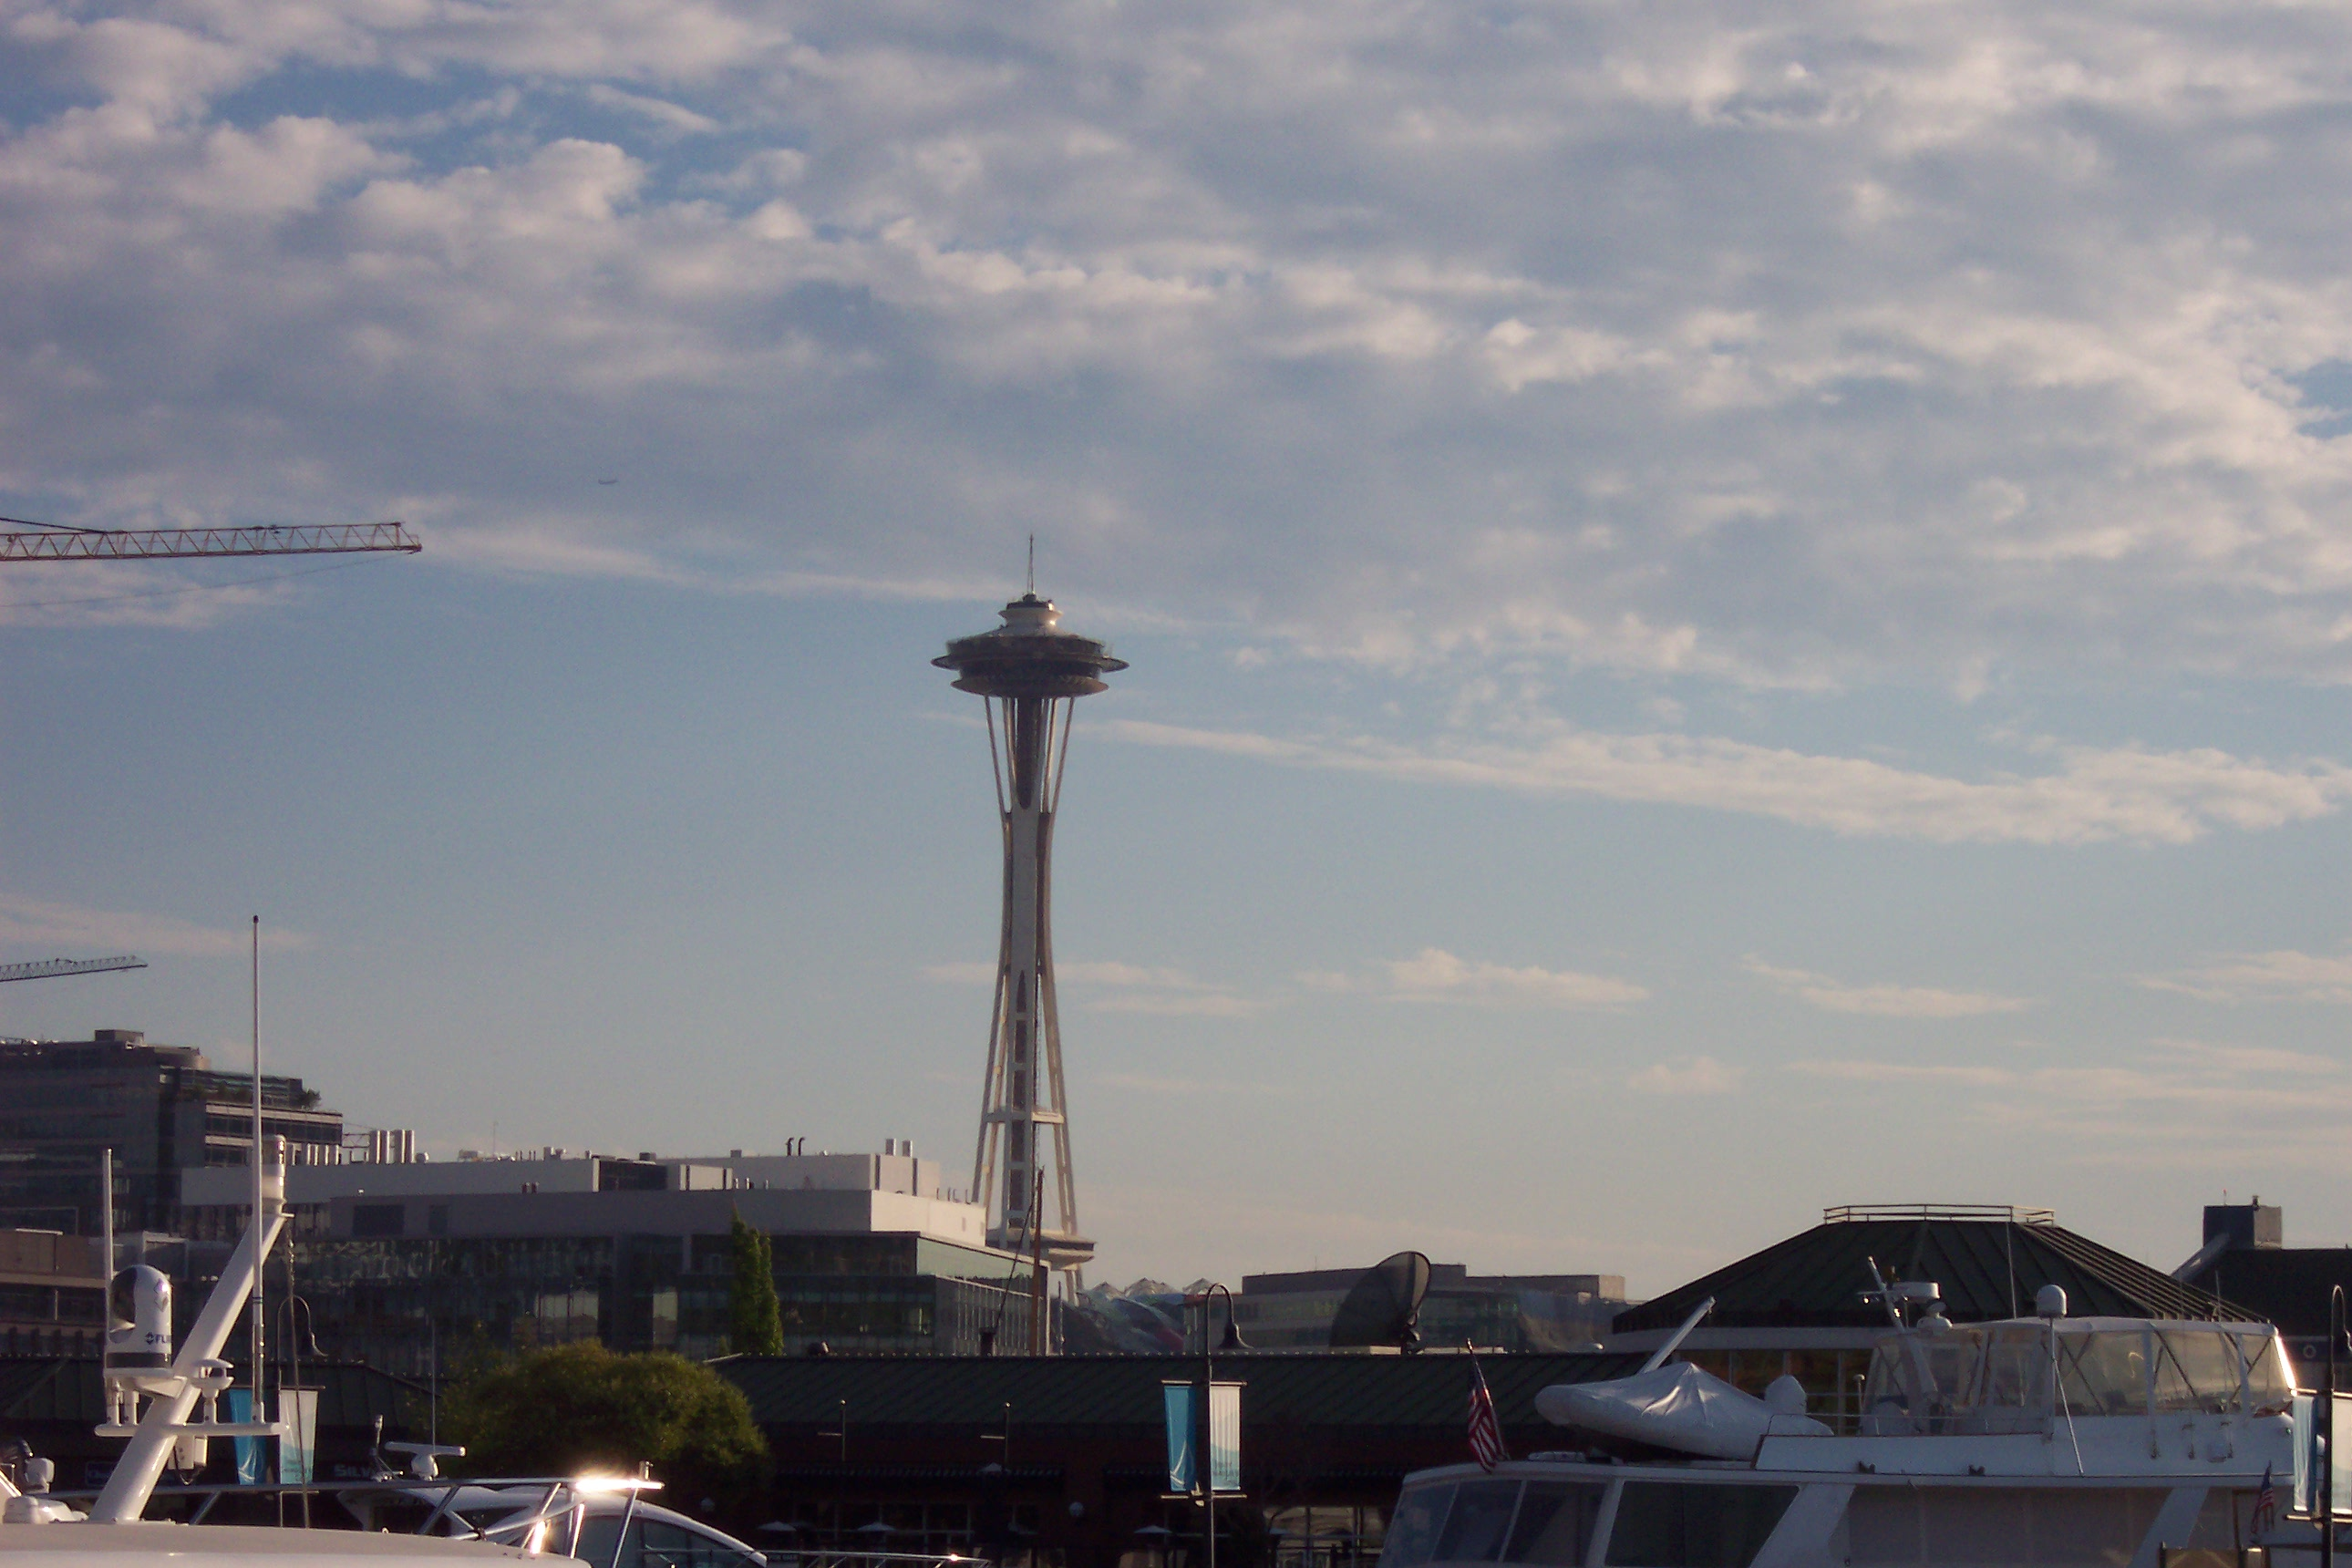 https://assets.sourcemedia.com/c2/d5/96007ebb4f449b46a333c52a53f6/space-needle-cuj-062518.JPG